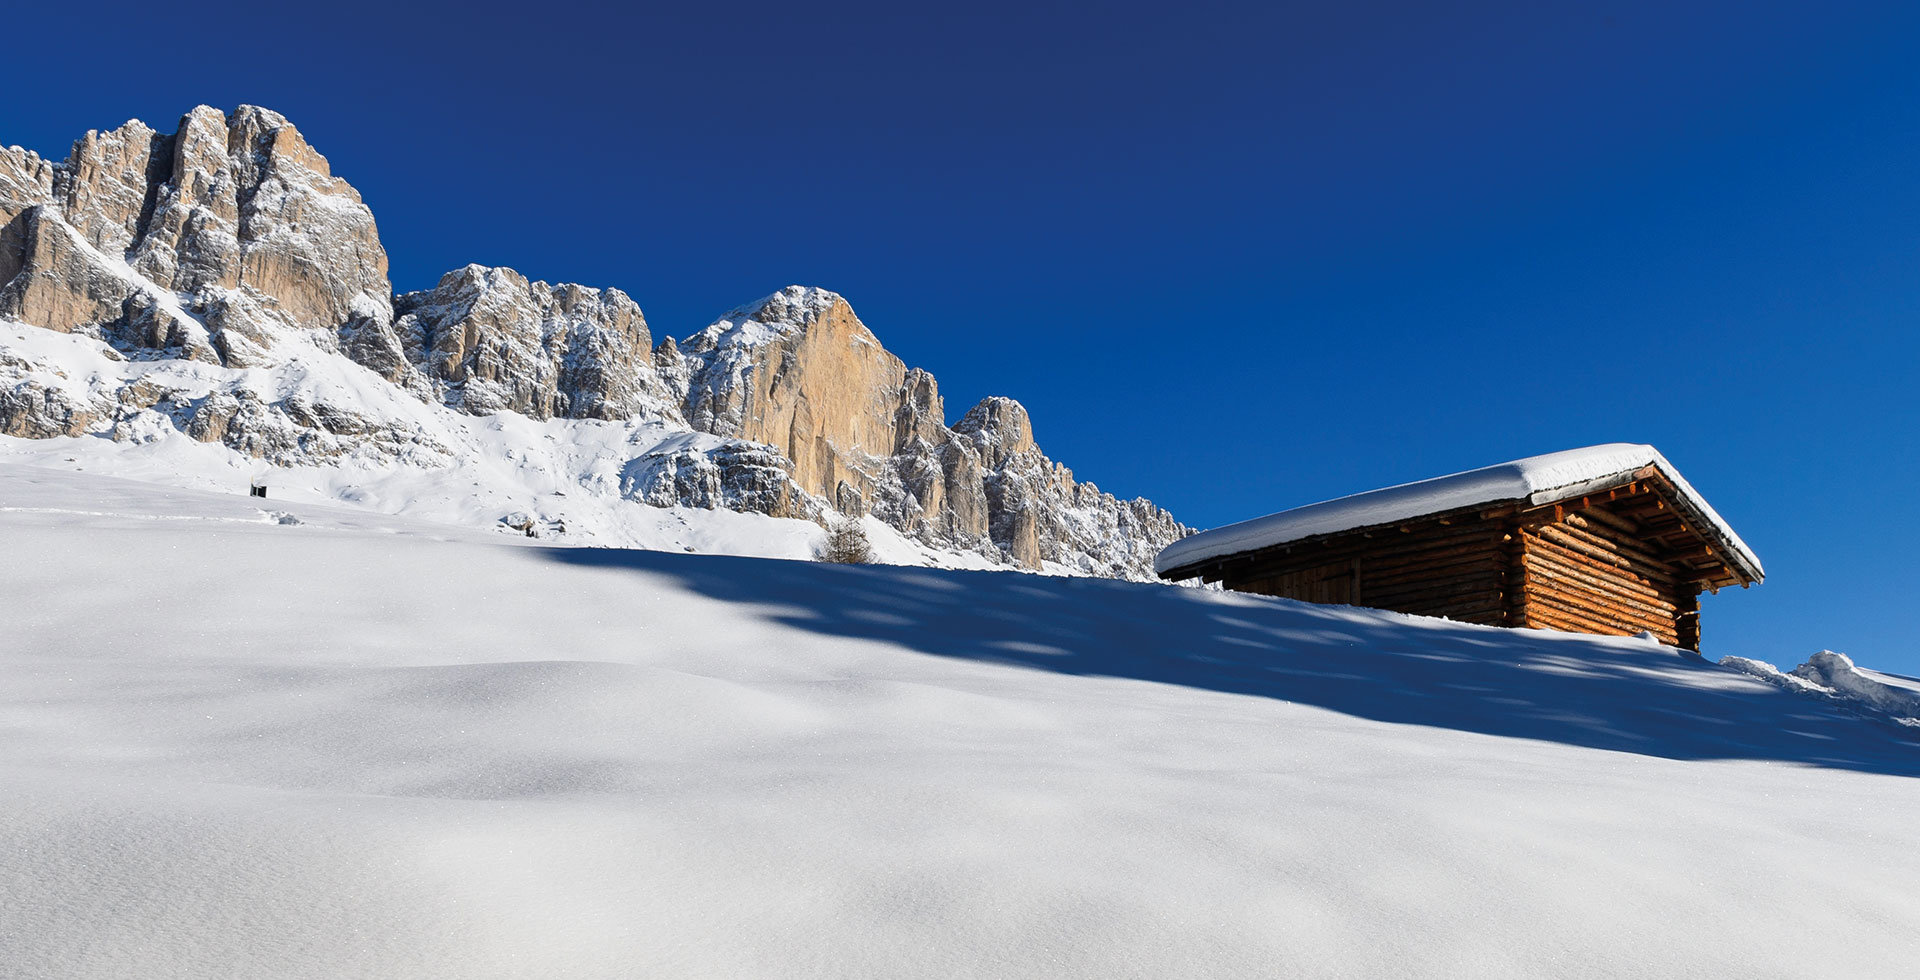 Winter holidays in the Dolomites